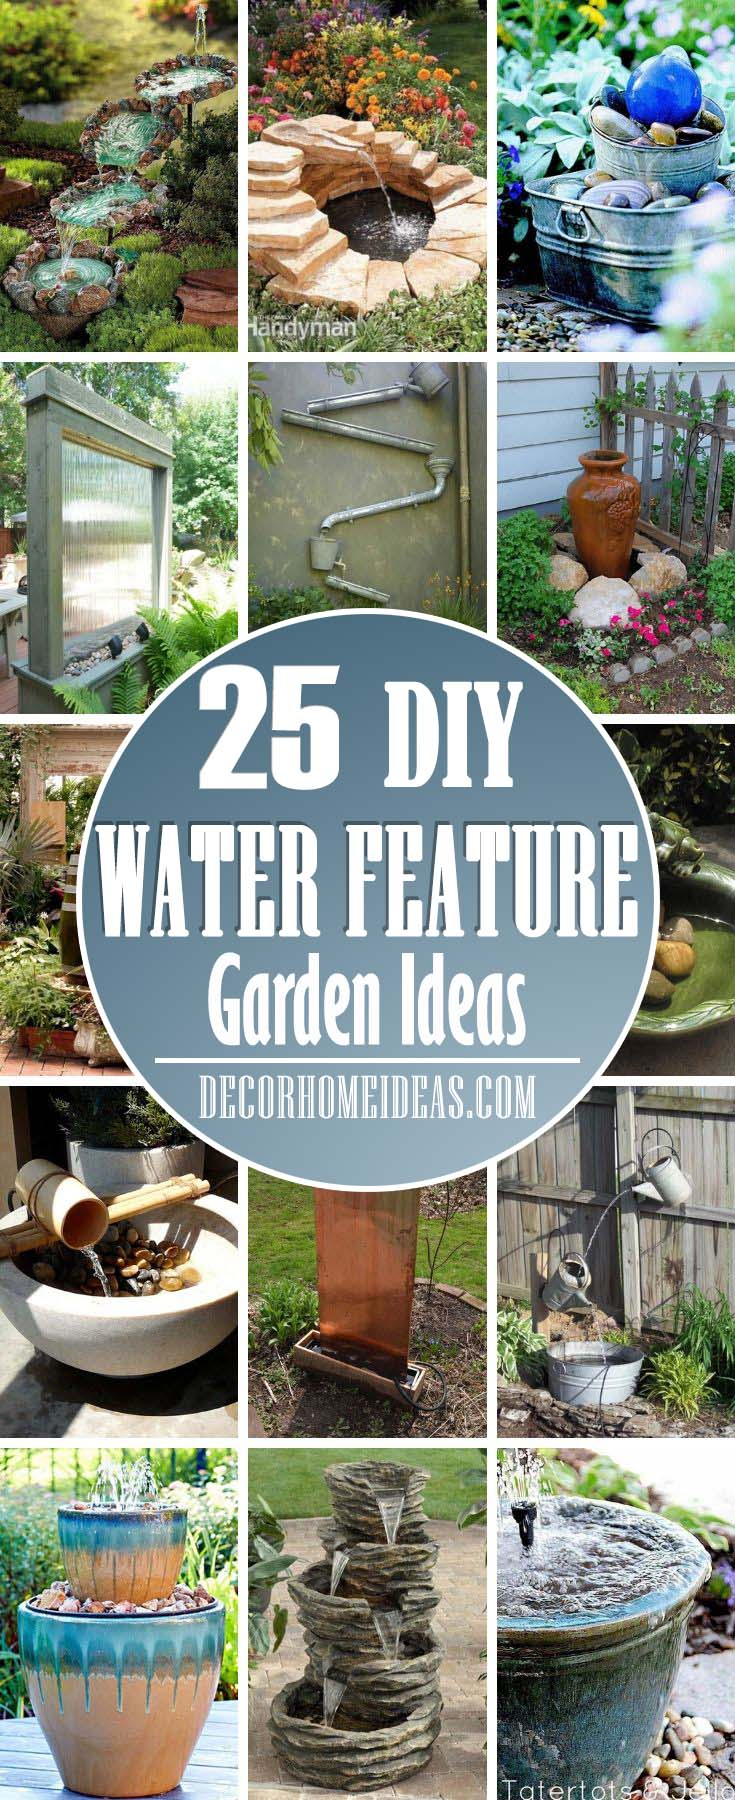 DIY Water Feature Garden Ideas. The garden water features can make your backyard an oasis of serenity and relaxation. #diy #garden #waterfall #waterfeature #decorhomeideas